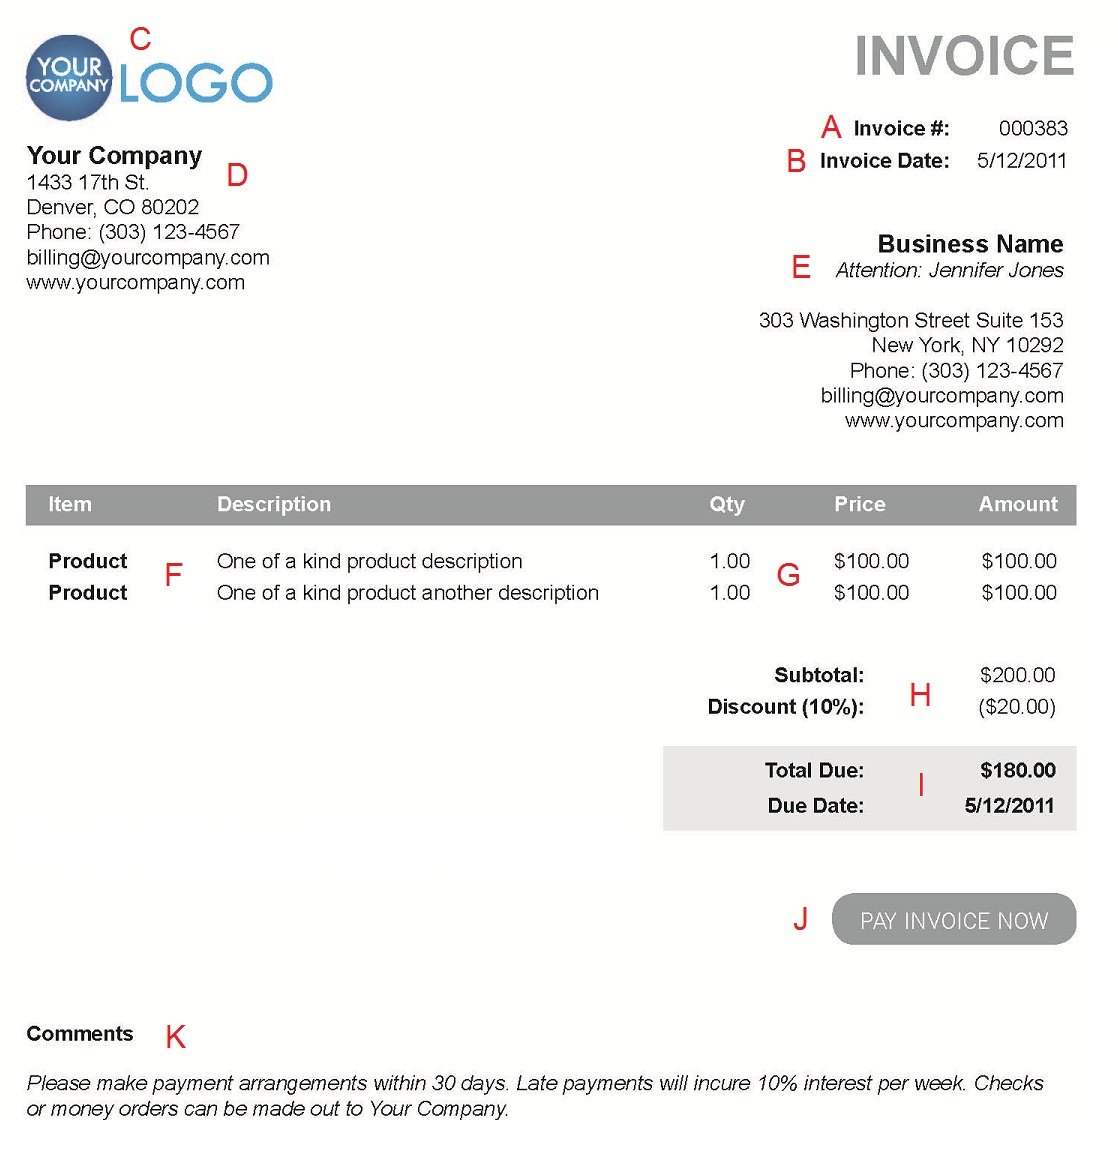 Opposenewapstandardsus  Prepossessing The  Different Sections Of An Electronic Payment Invoice With Excellent A  With Delightful Templates For Receipts Also Mini Thermal Receipt Printer In Addition What Is A Depository Receipt And Get A Receipt As Well As How To Find Tracking Number On Usps Receipt Additionally Atm Receipt Generator From Paysimplecom With Opposenewapstandardsus  Excellent The  Different Sections Of An Electronic Payment Invoice With Delightful A  And Prepossessing Templates For Receipts Also Mini Thermal Receipt Printer In Addition What Is A Depository Receipt From Paysimplecom